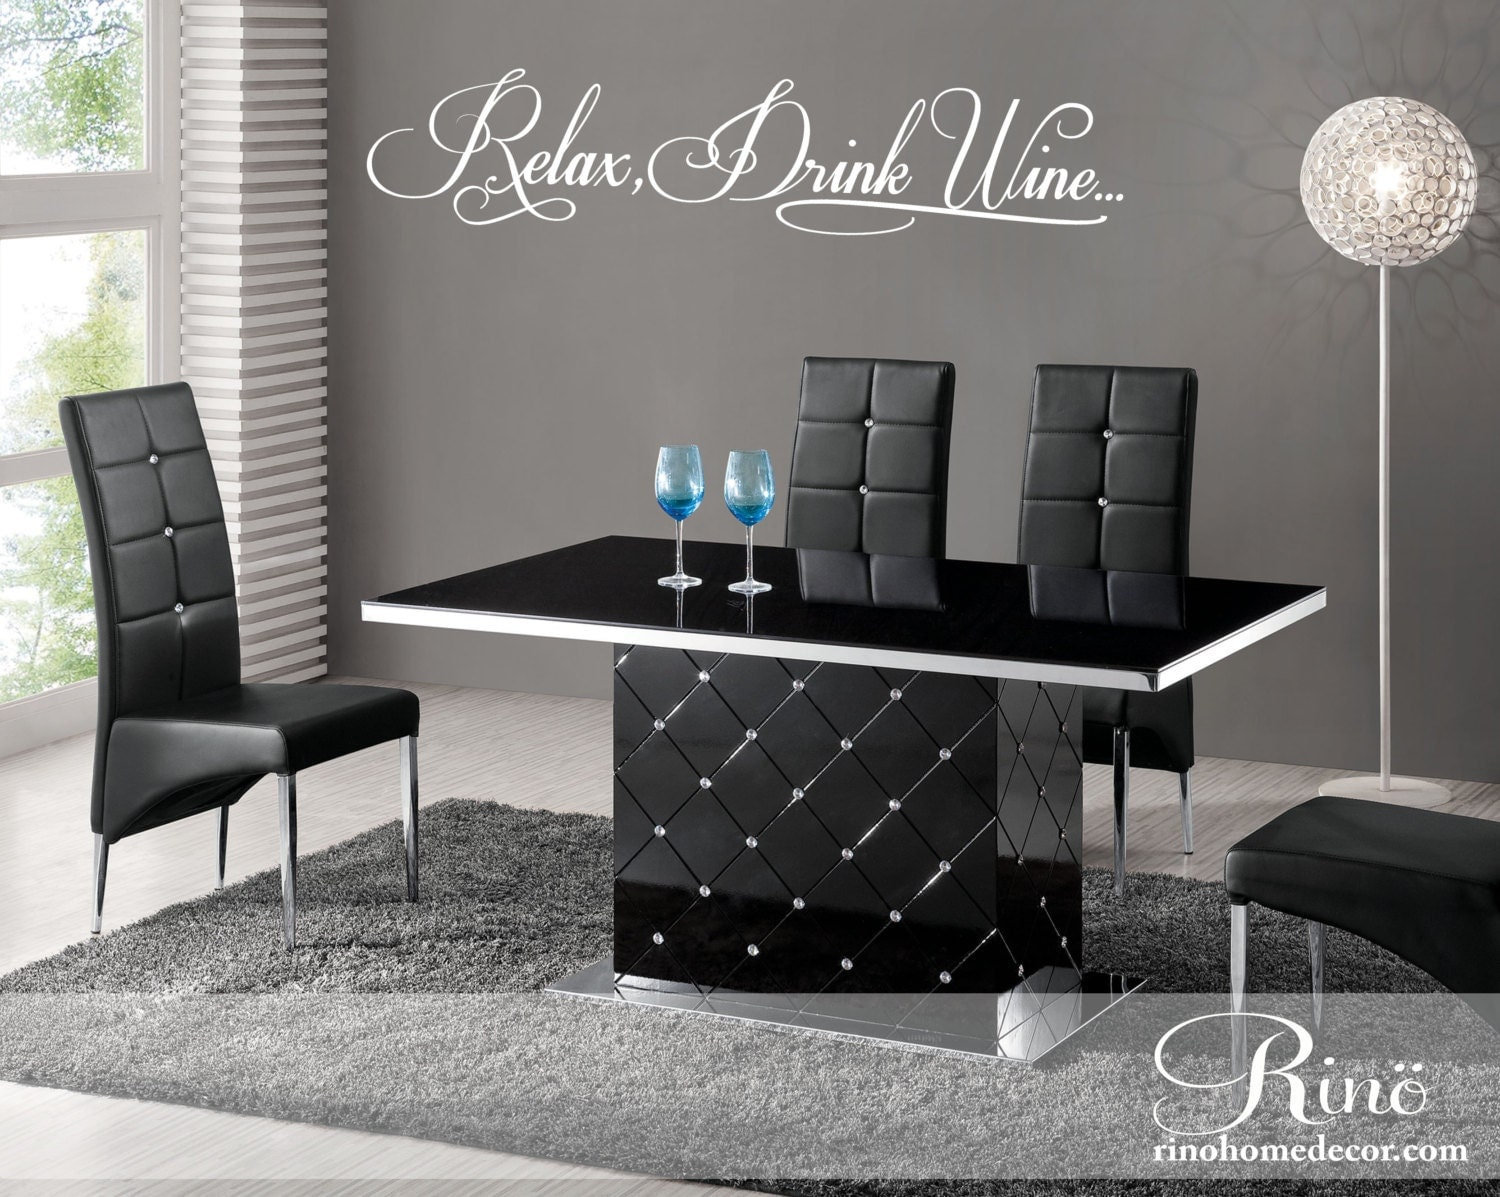 Relax Drink Wine Kitchen Wall Decal